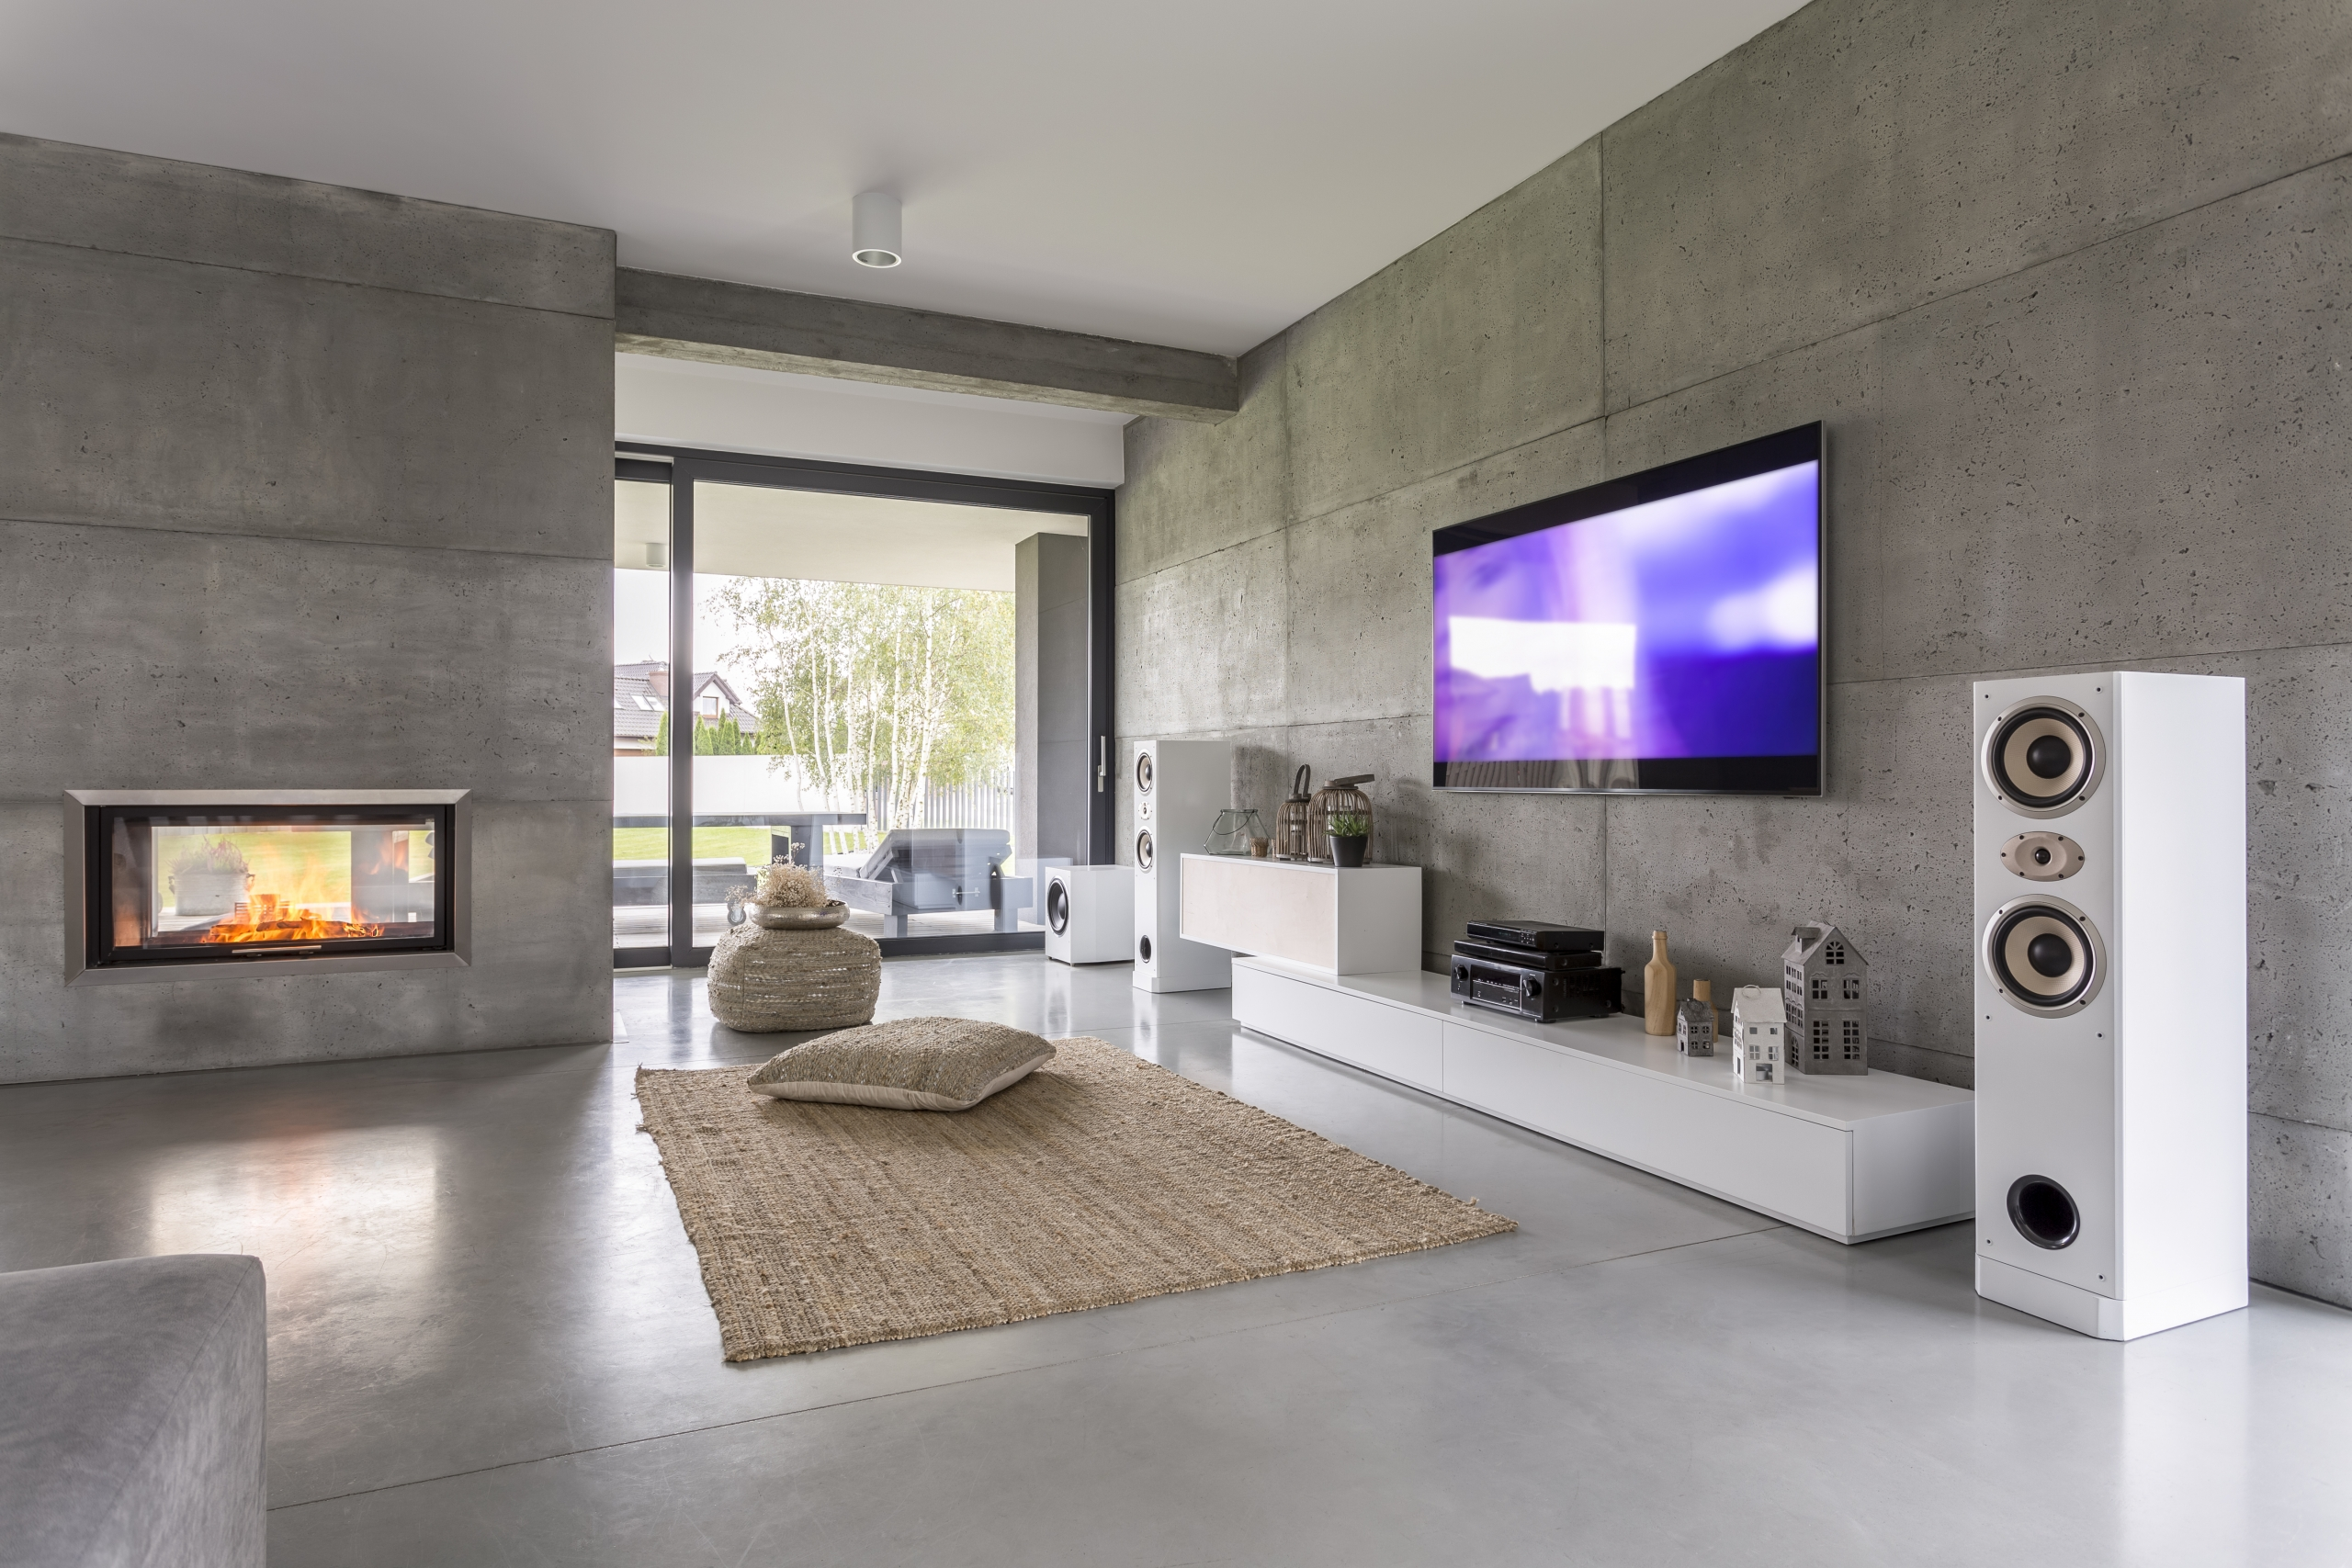 Living room with a mounted television and surround sound speakers setup